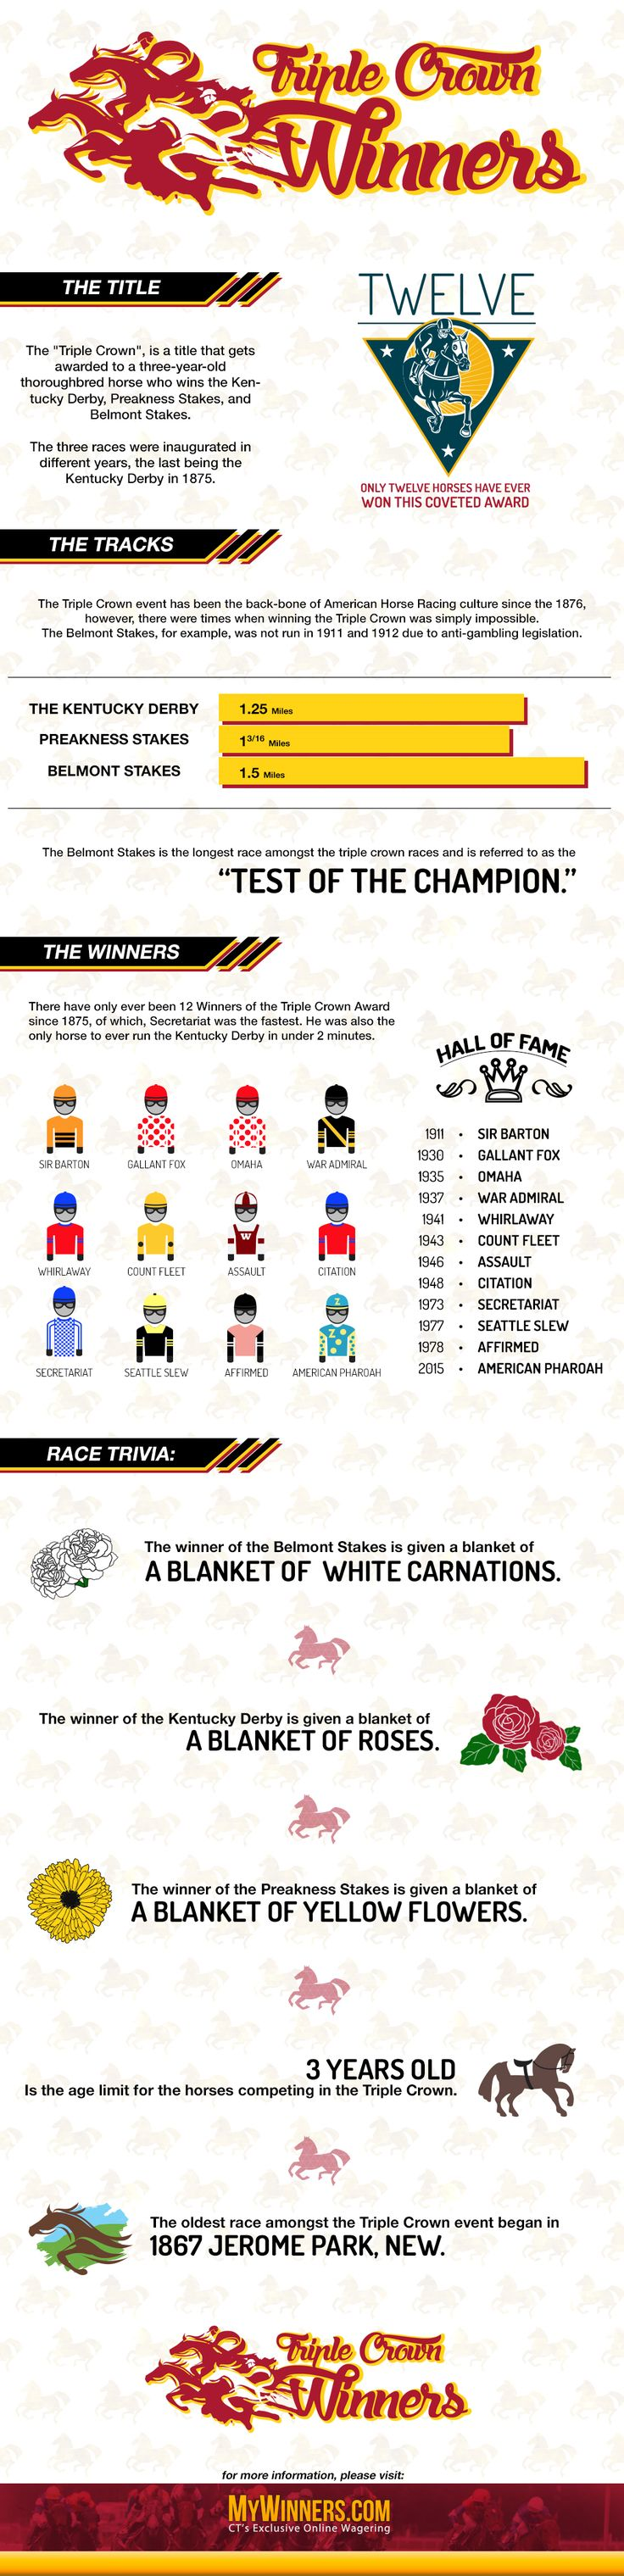 Horse racing infographic